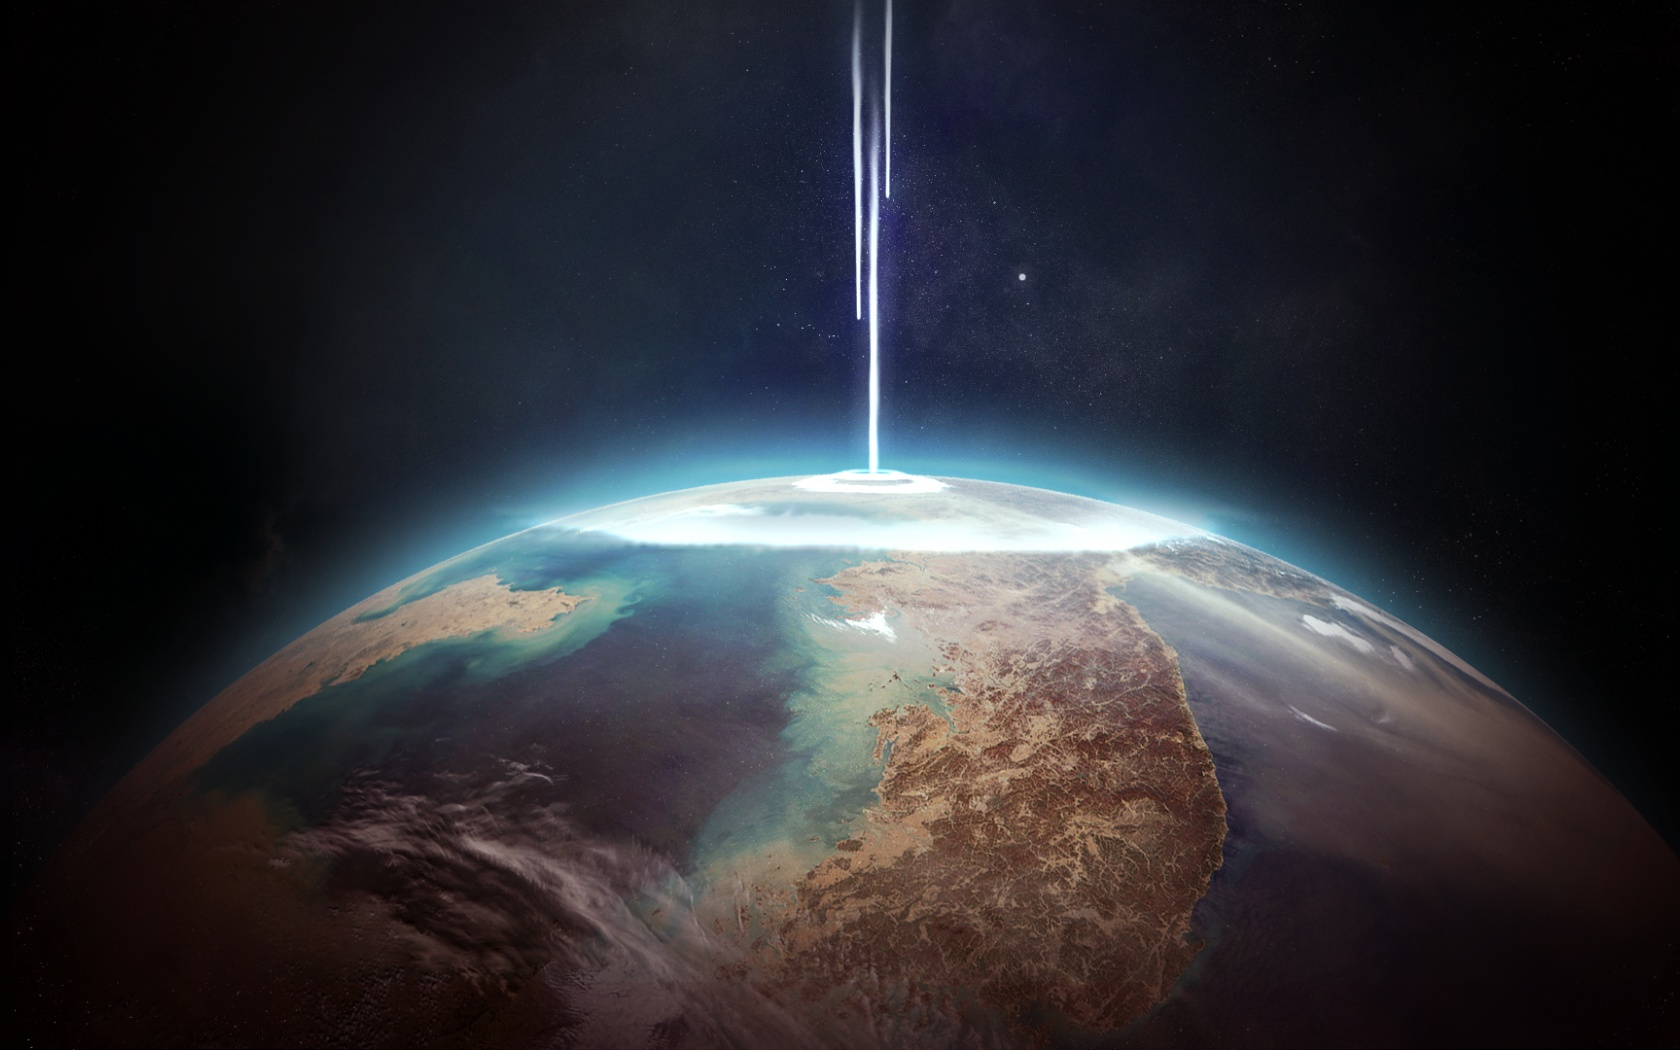 the earths place in space Earth, our home, is the third planet from the sun it is the only planet known to have an atmosphere containing free oxygen, oceans of liquid water on its surface, and, of course, life.